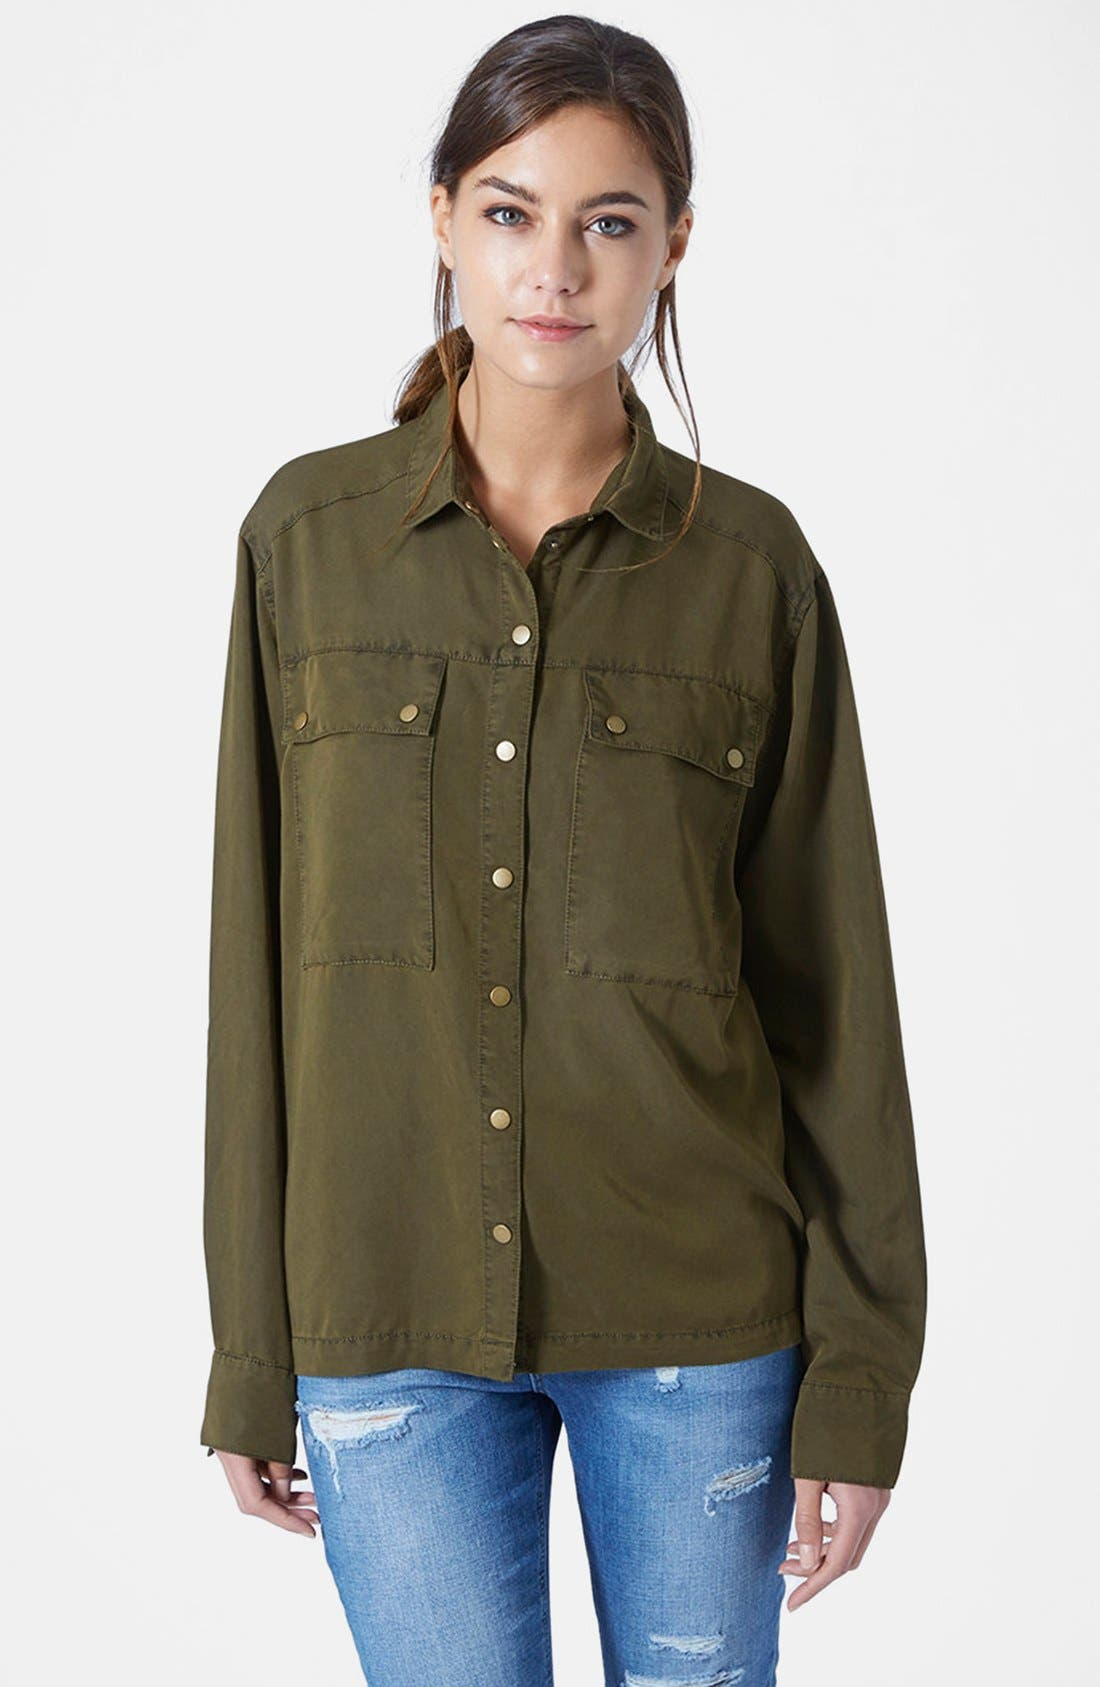 Alternate Image 1 Selected - Topshop Casual Button Front Shirt